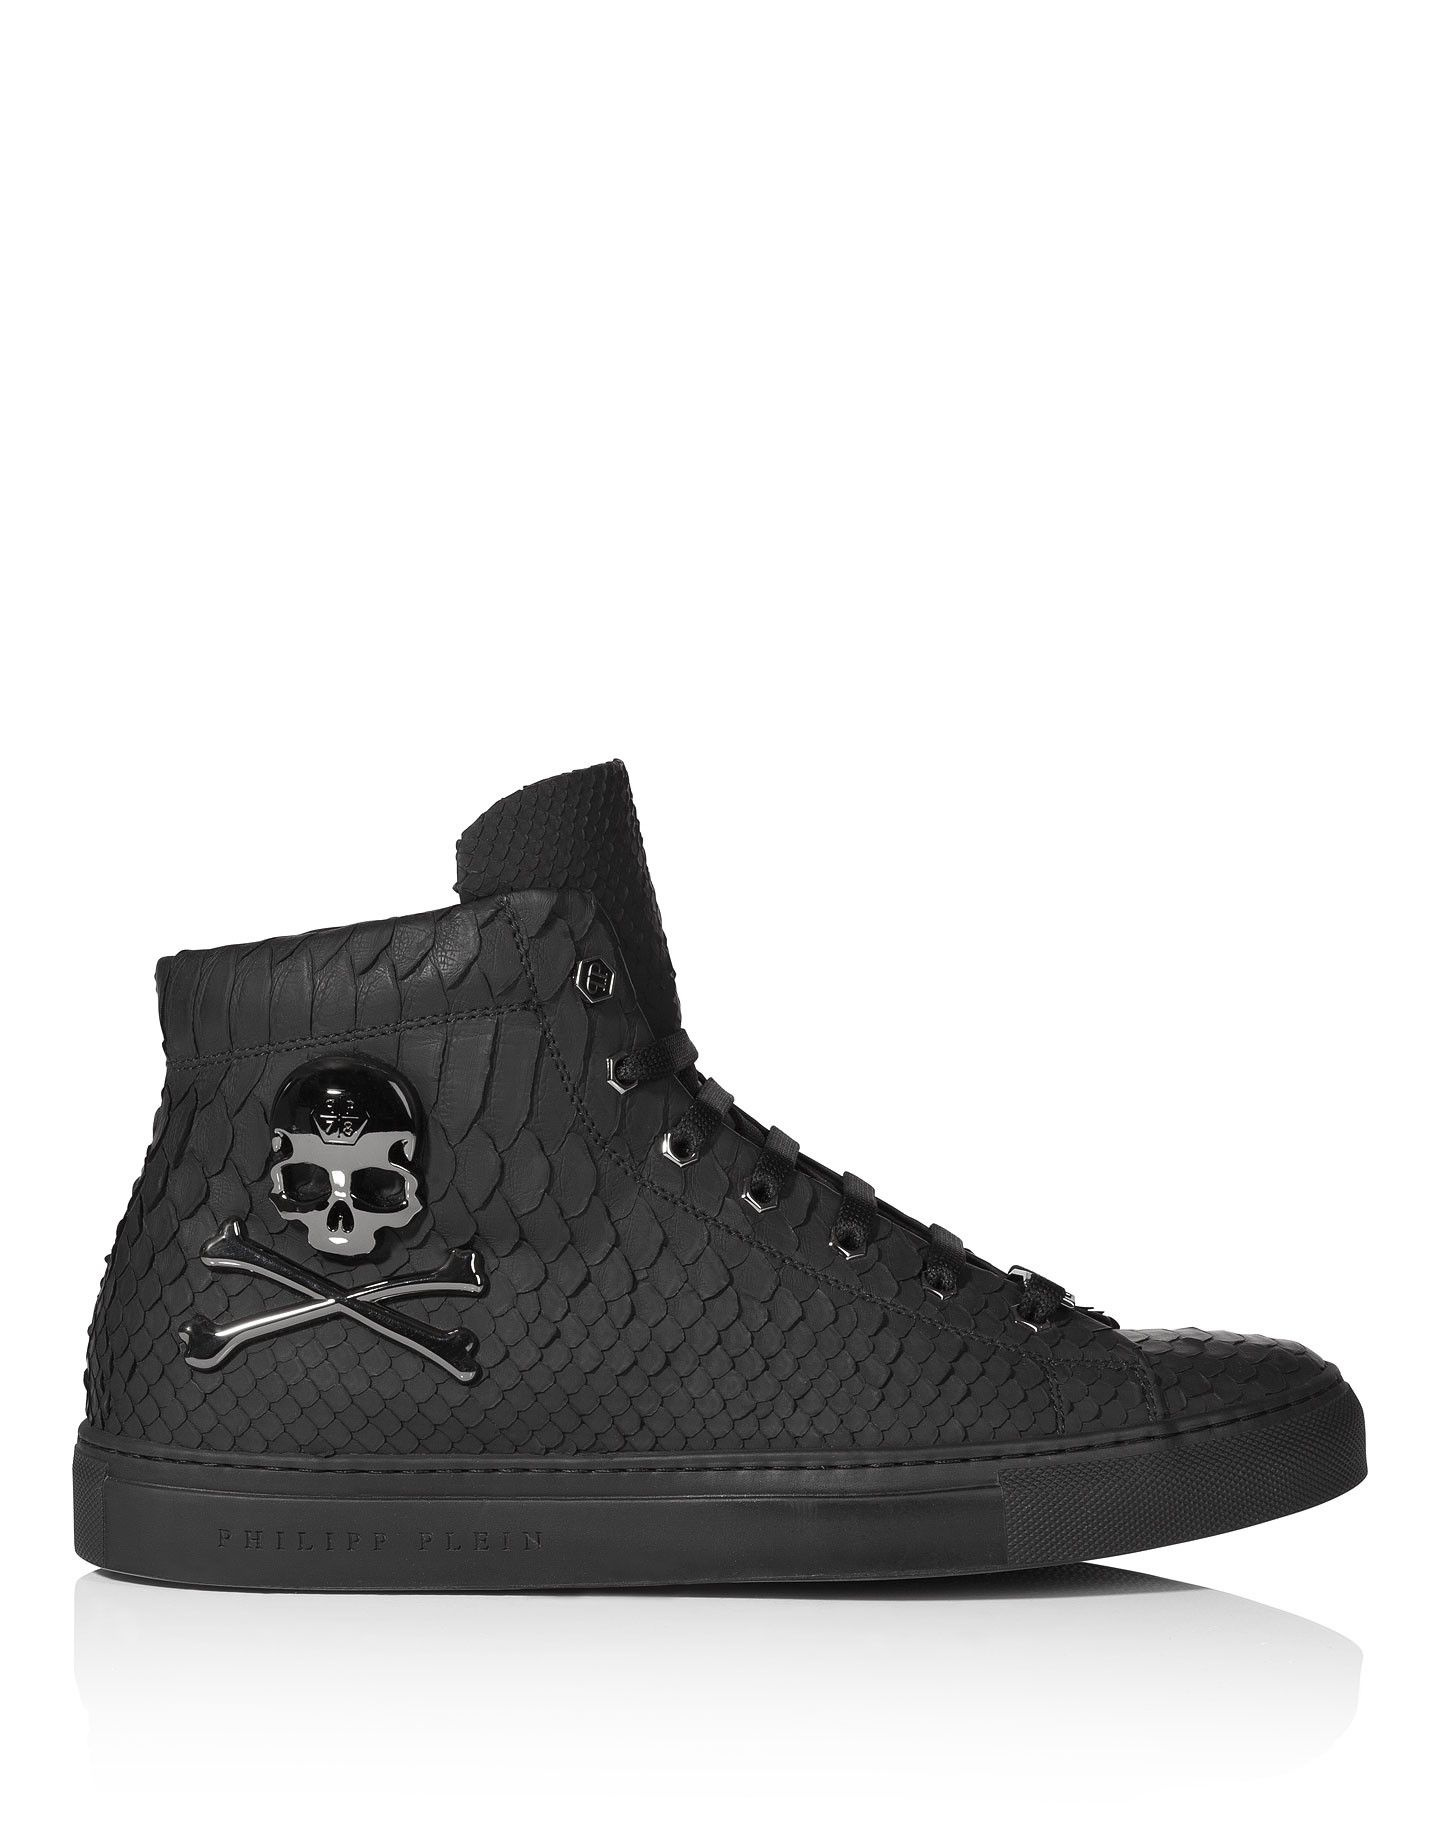 bce282514660e4 Philipp Plein - high sneakers